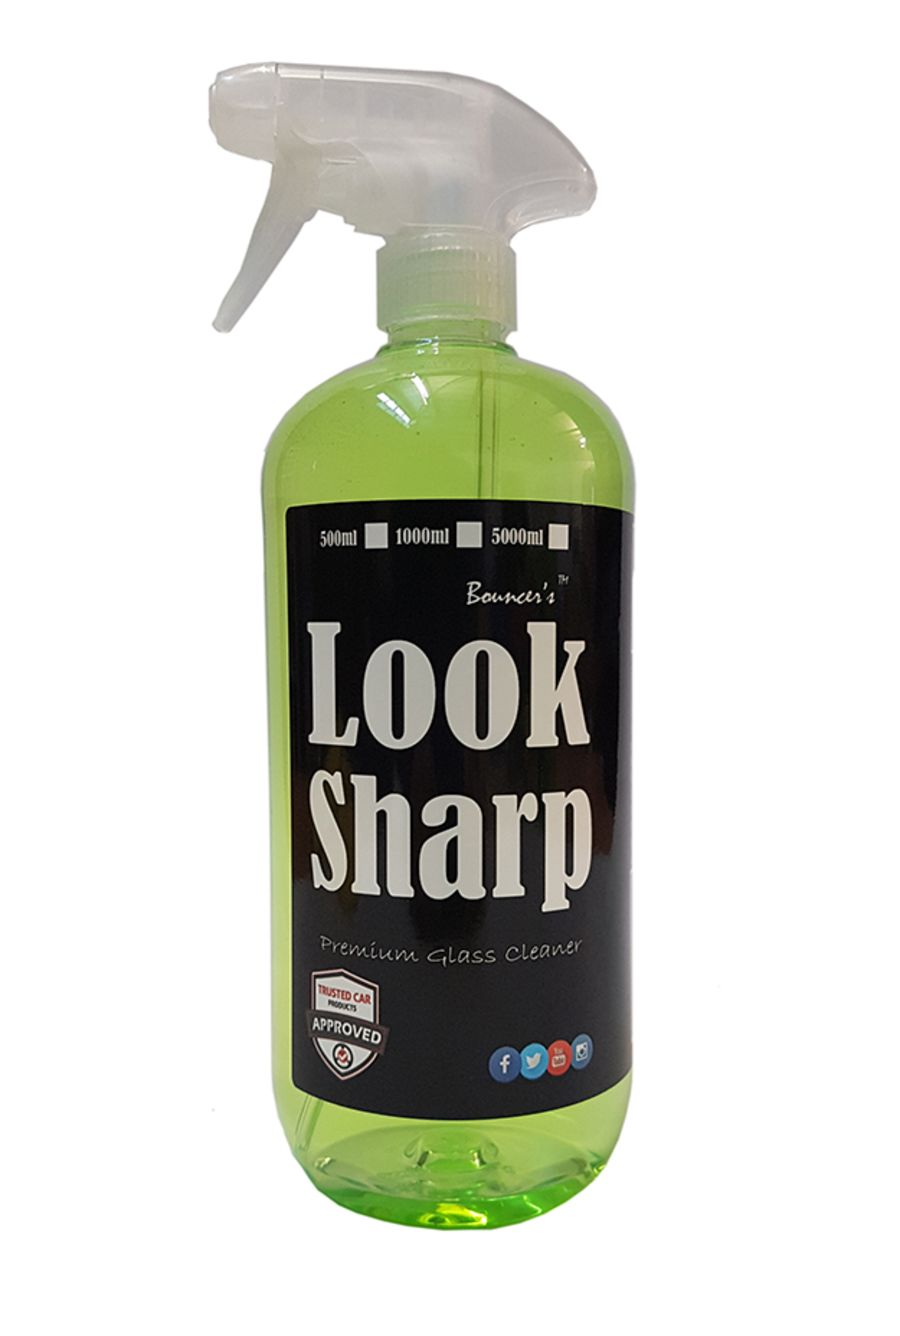 Bouncer's Look Sharp Glass Cleaner